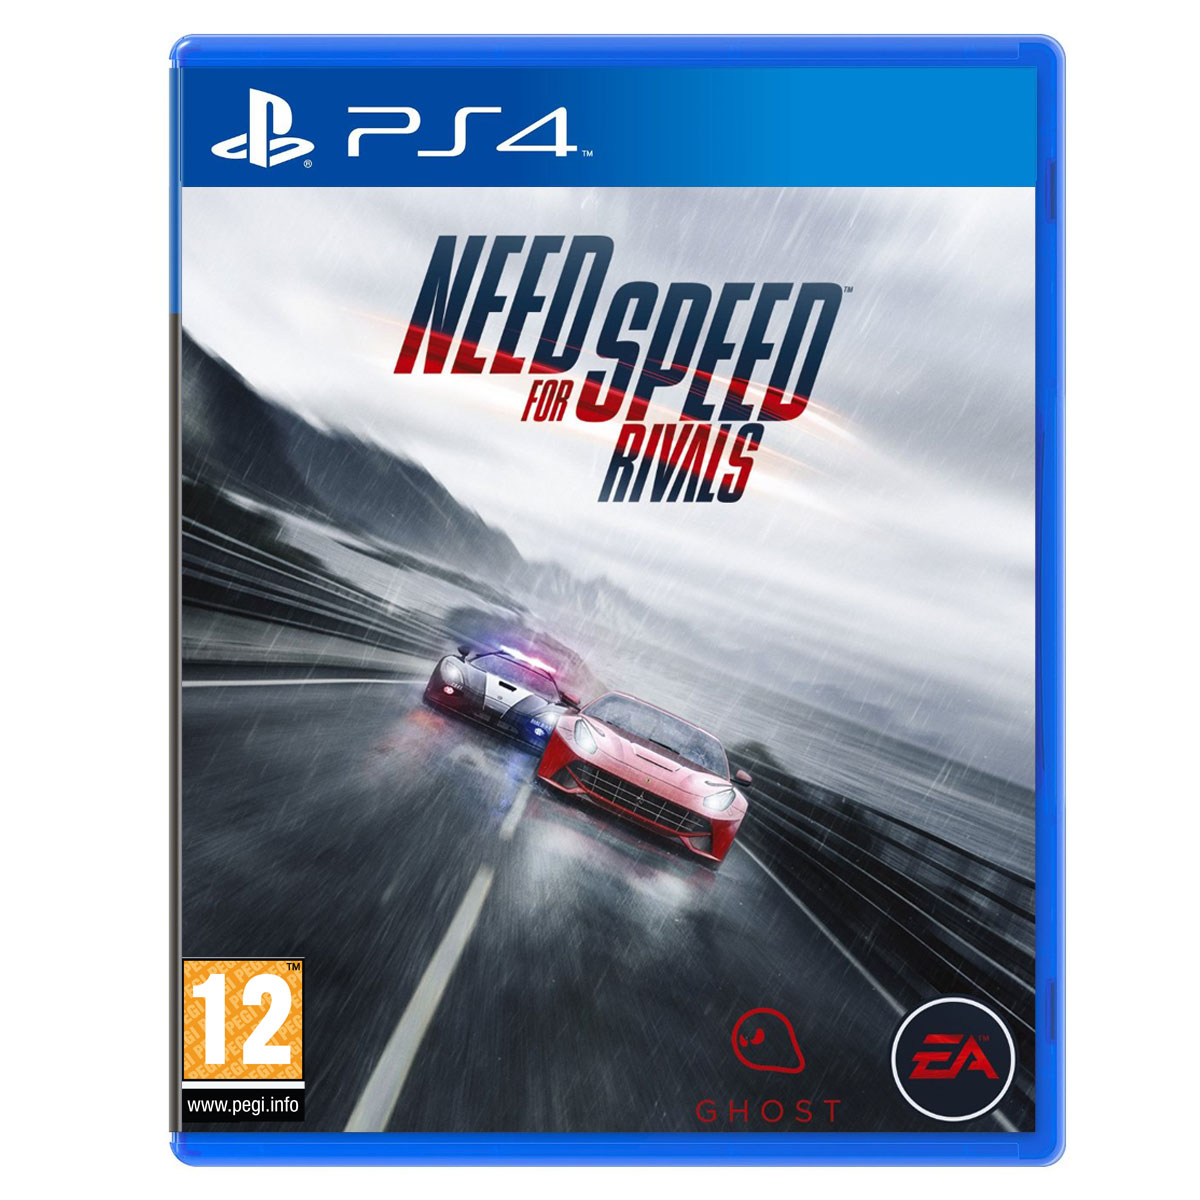 need for speed rivals ps4 jeux ps4 electronic arts sur. Black Bedroom Furniture Sets. Home Design Ideas